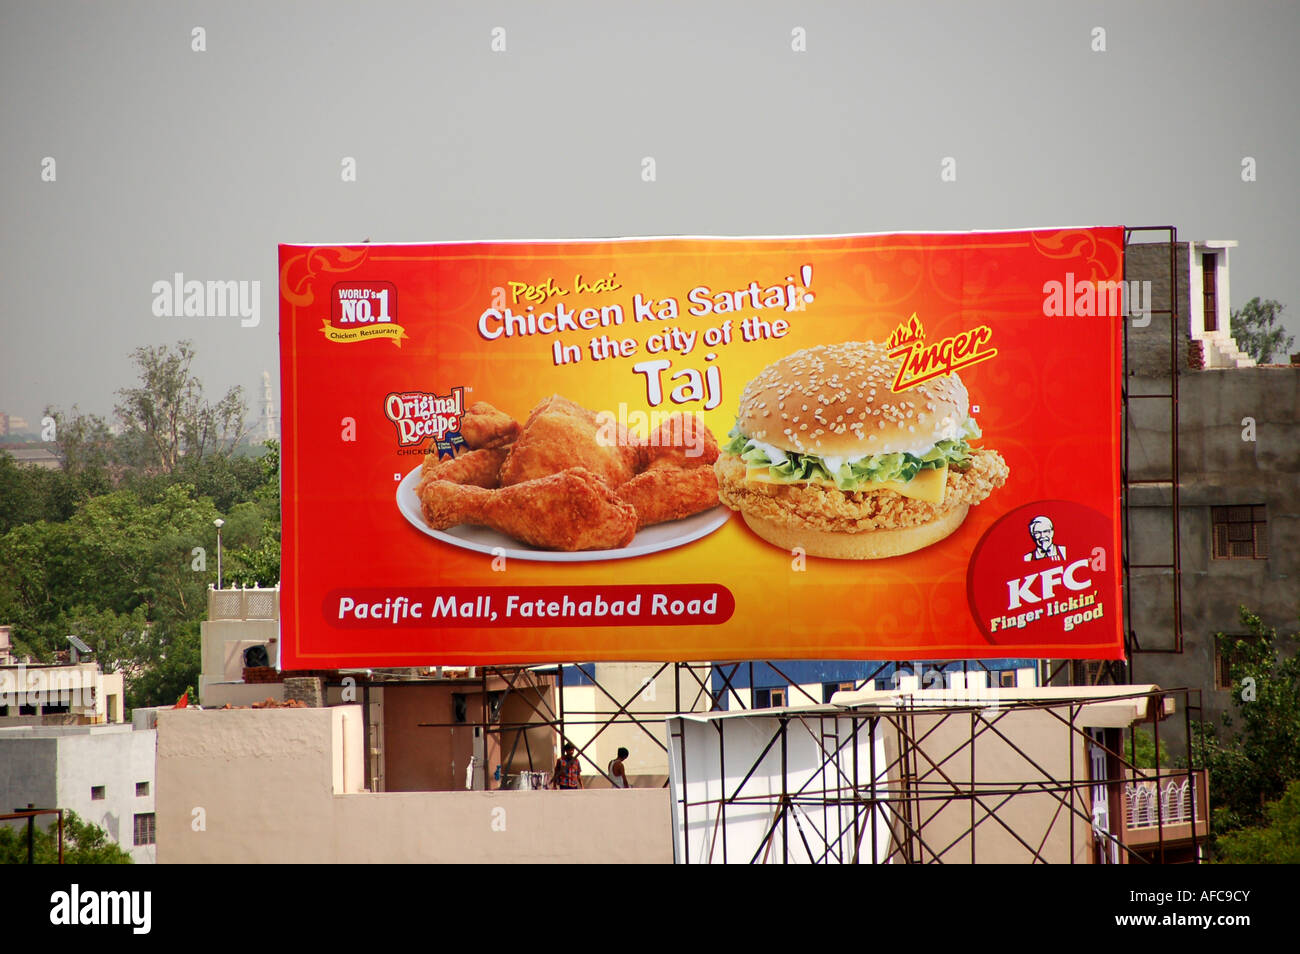 Advert for Kentucky Fried Chicken in Agra, India - Stock Image